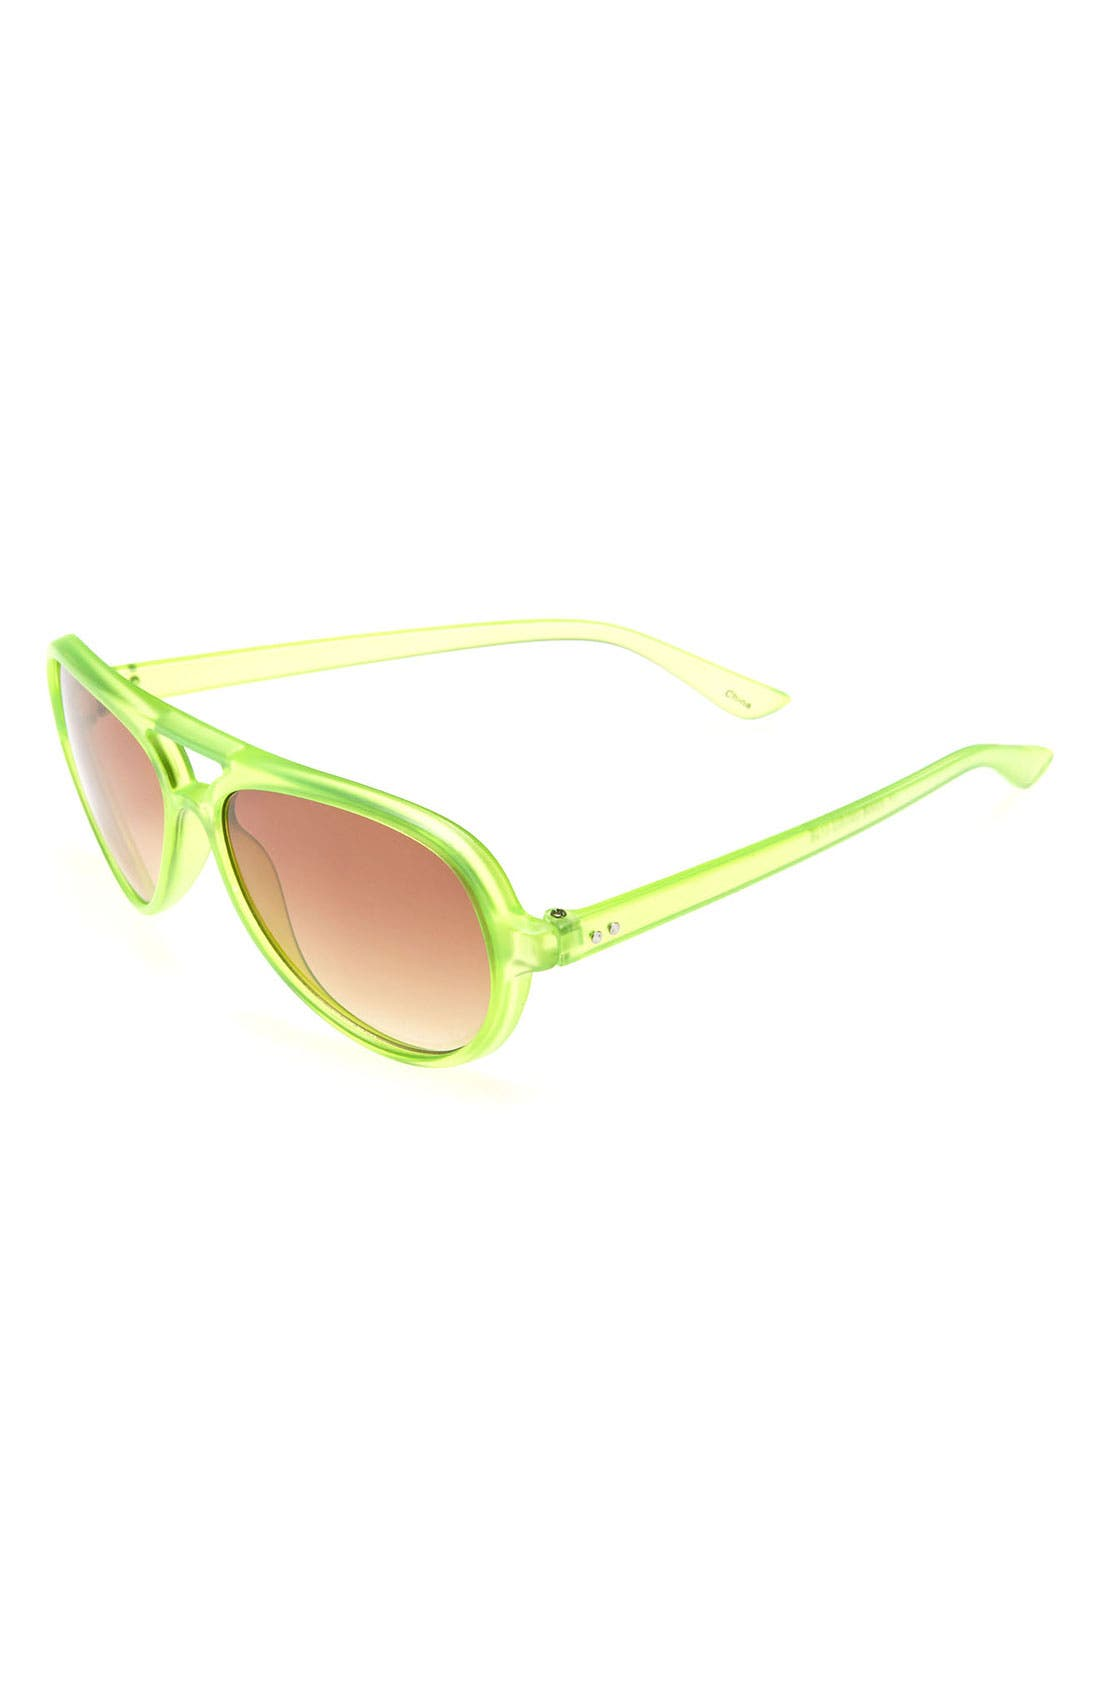 Alternate Image 1 Selected - Icon Eyewear Aviator Sunglasses (Boys)